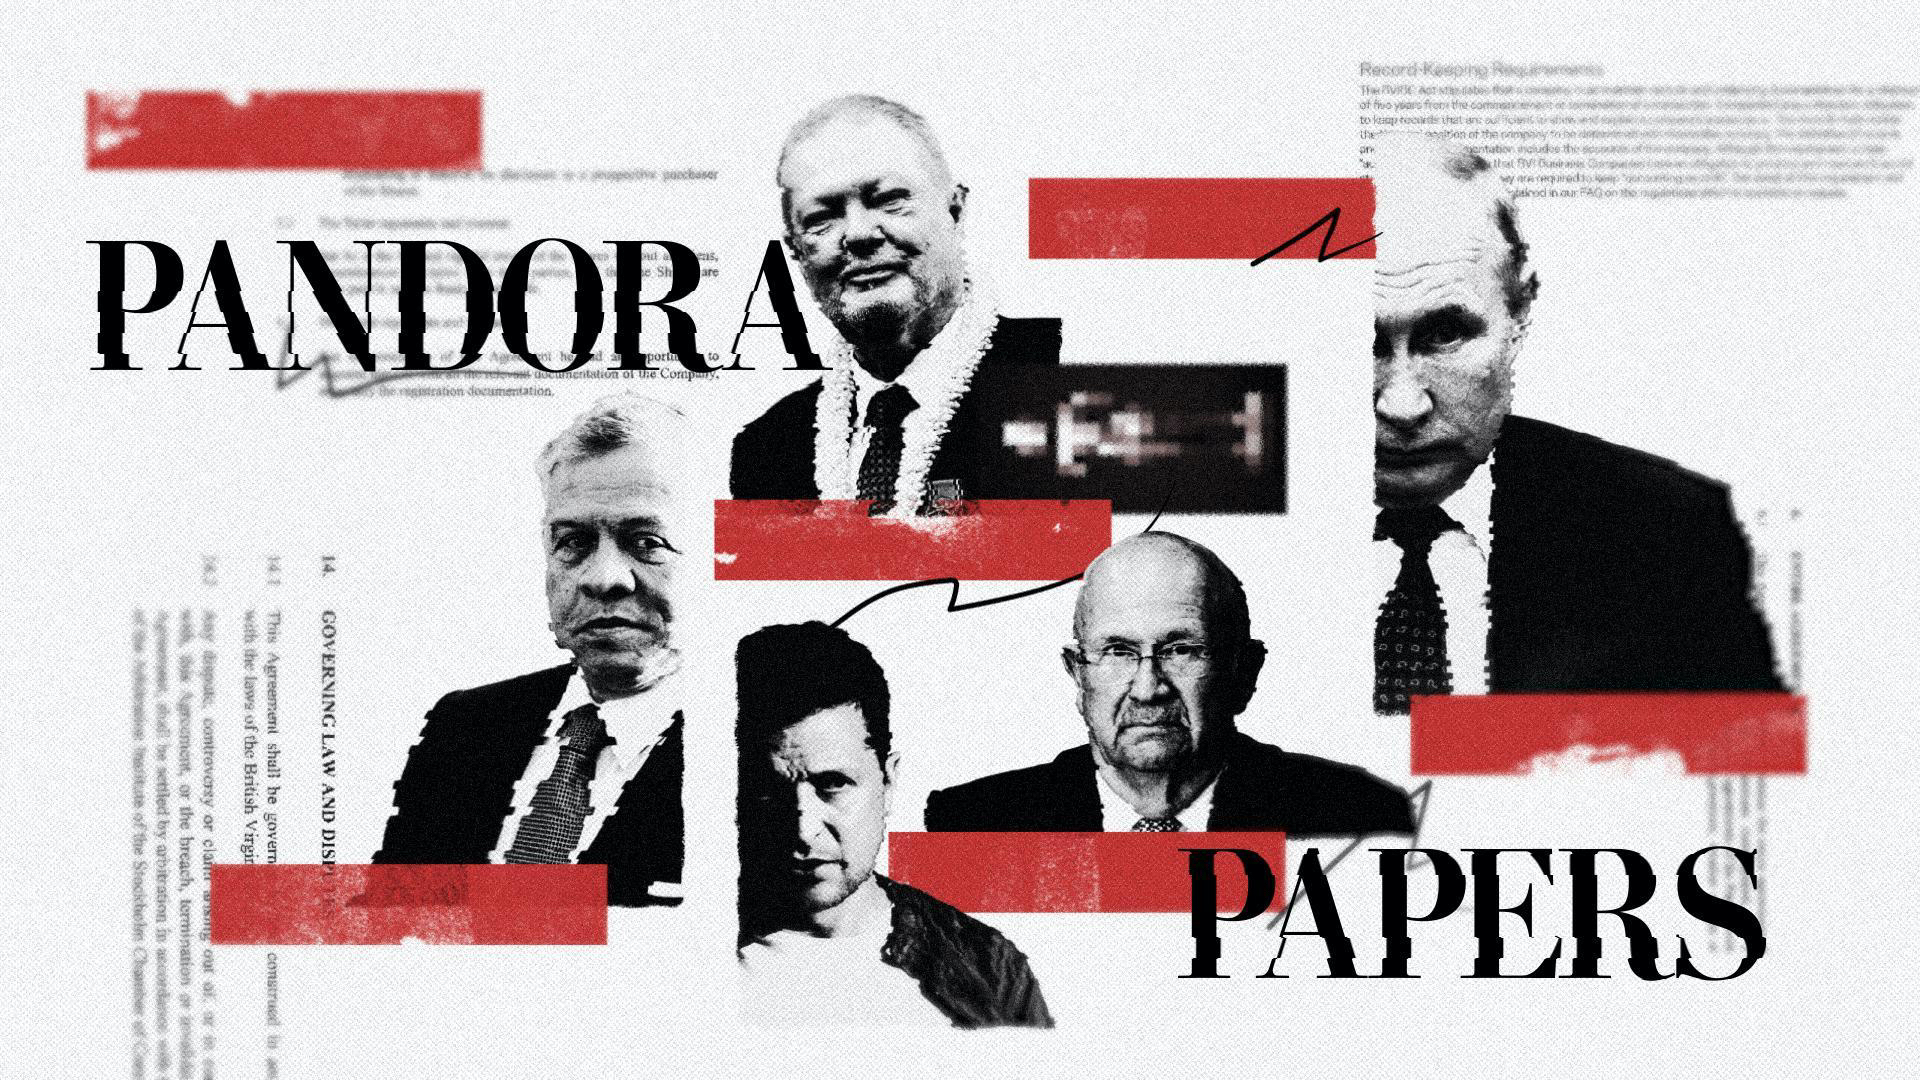 Pandora Papers: Offshore havens and hidden riches of world leaders and billionaires exposed in unprecedented leak